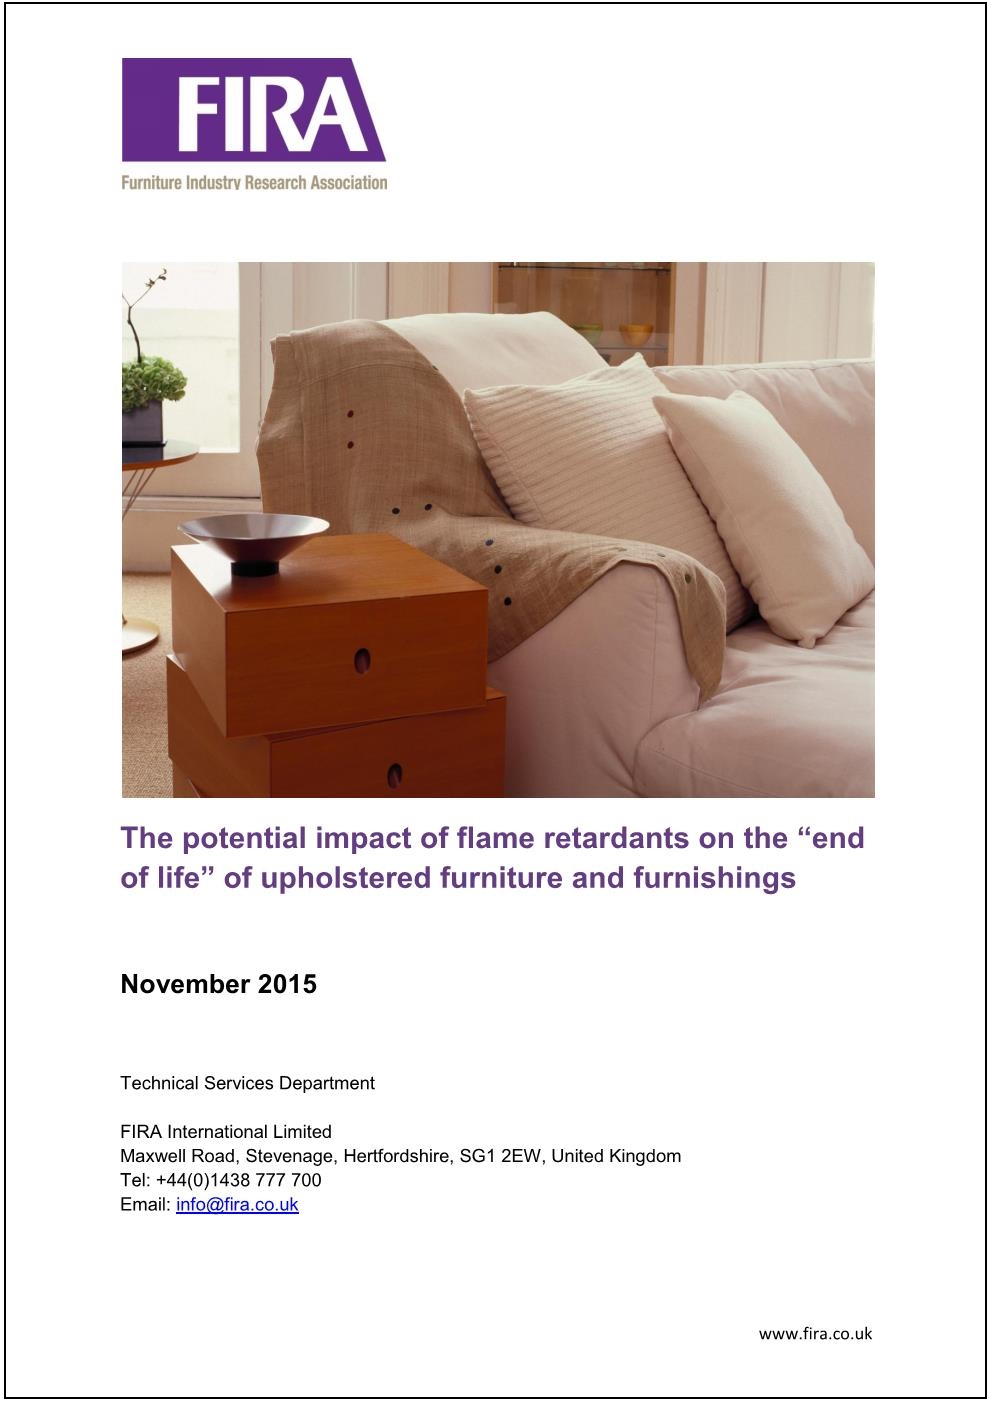 Cover-The-potential-impact-of-flame-retardants-on-the-end-of-life-of-upholstered-furniture-and-furnishings.jpg#asset:1187:url